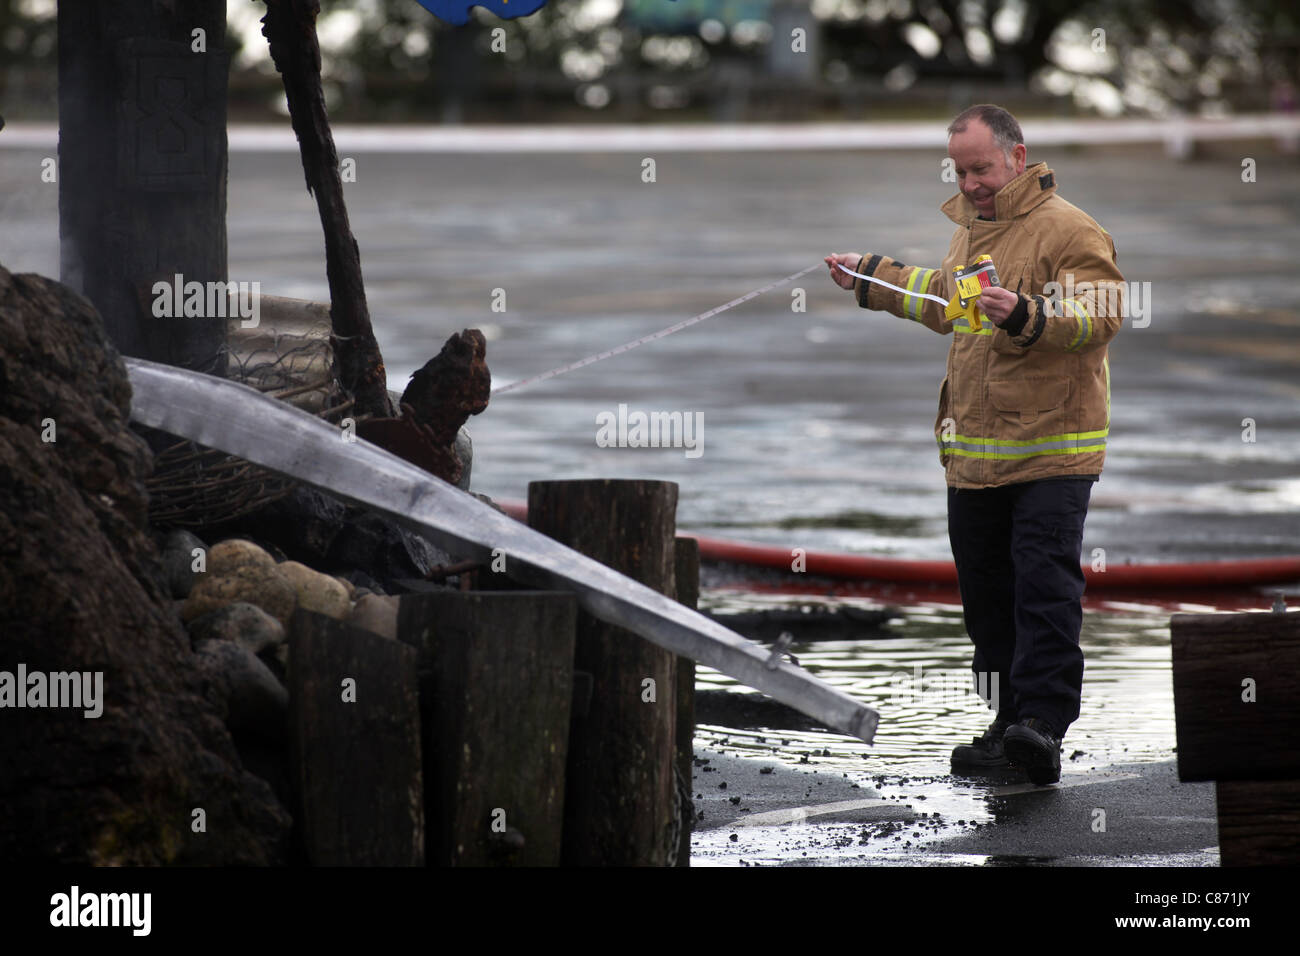 Fire personnel on the scene of a suspicious fire at Mapua's Touch the Sea aquarium, Nelson, New Zealand - Stock Image